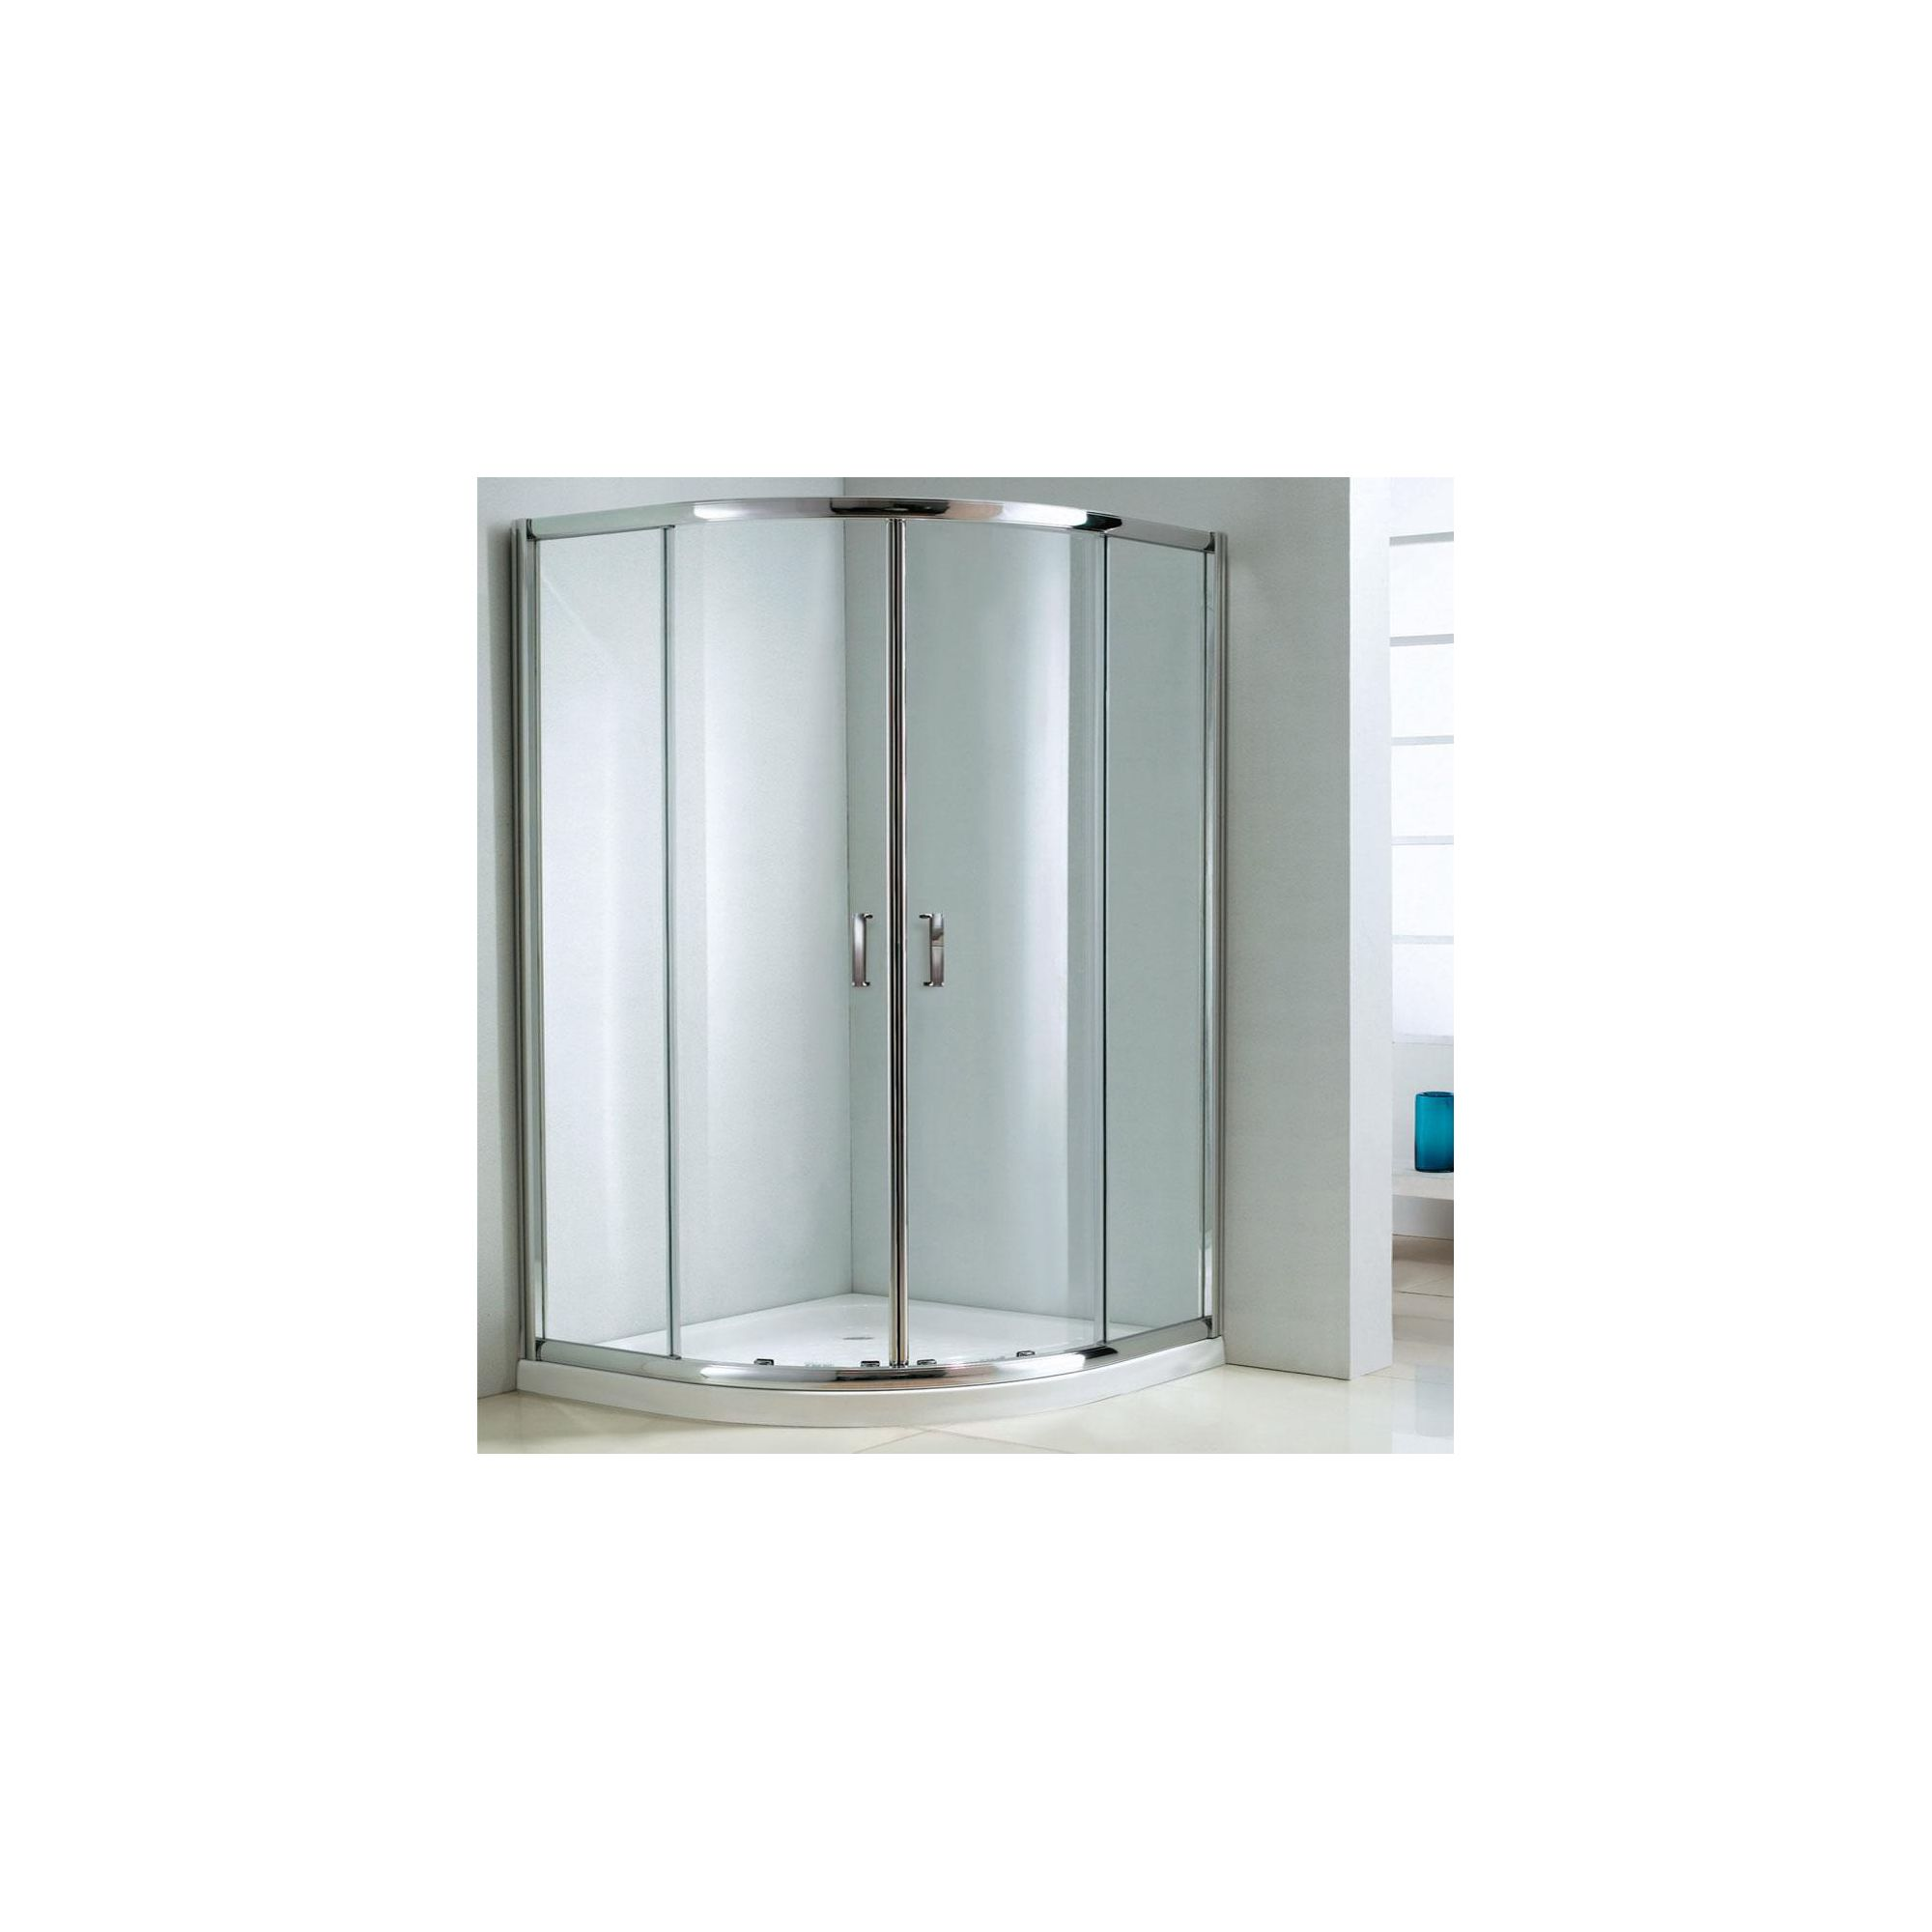 Duchy Style Double Offset Quadrant Shower Door, 1200mm x 800mm, 6mm Glass at Tesco Direct